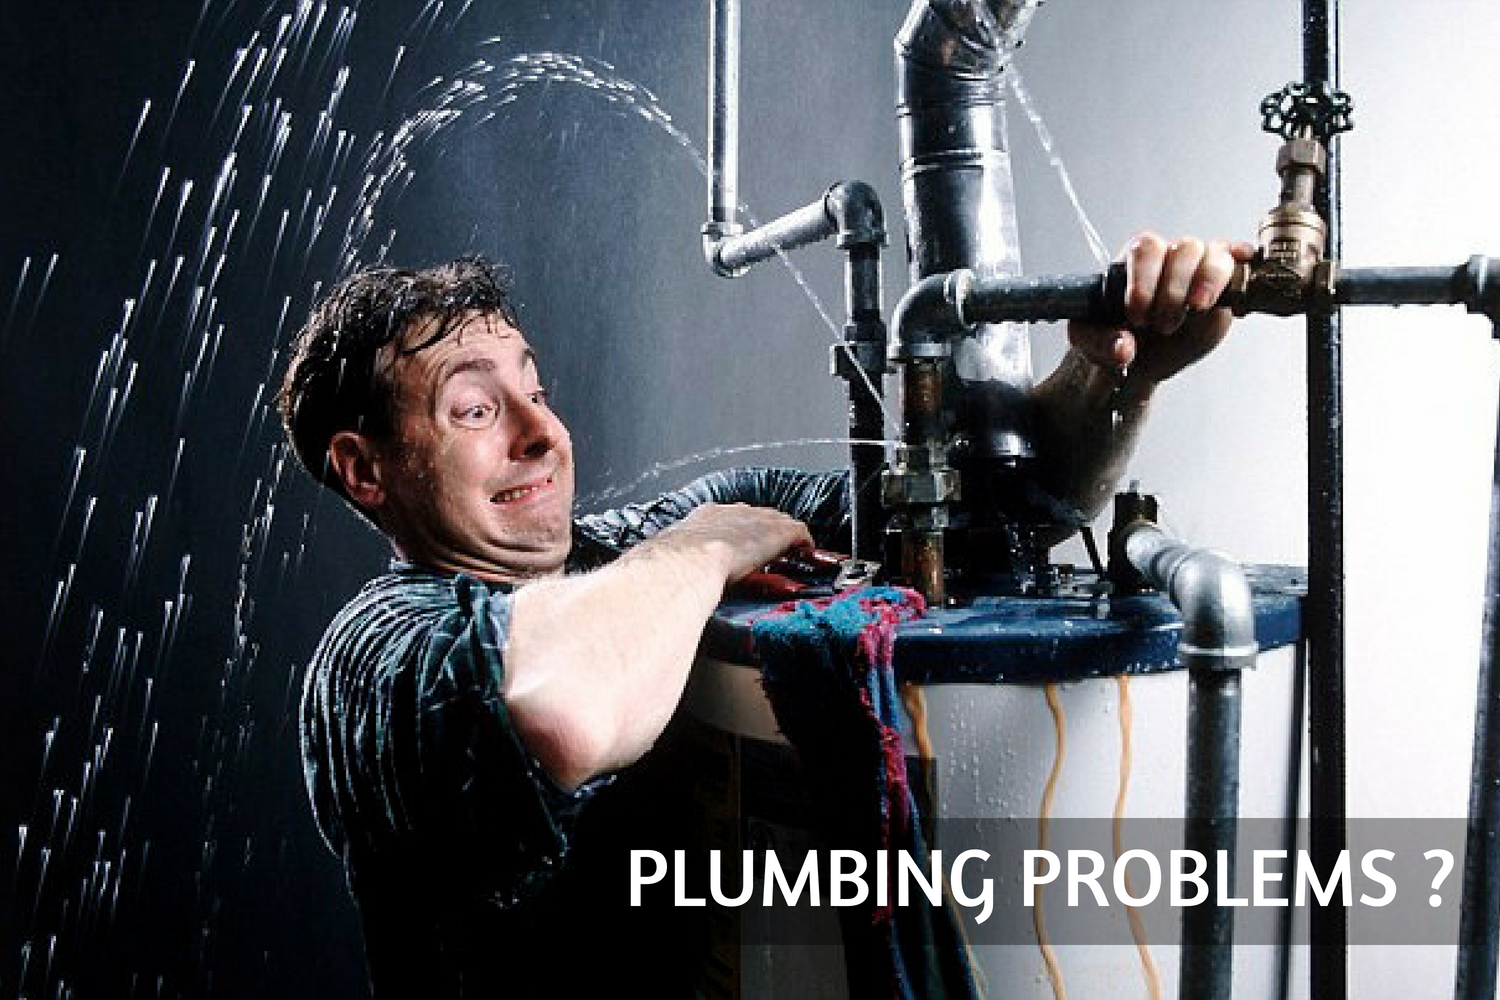 Pipe Plumber Happy Birthday Meme Www Miifotos Com